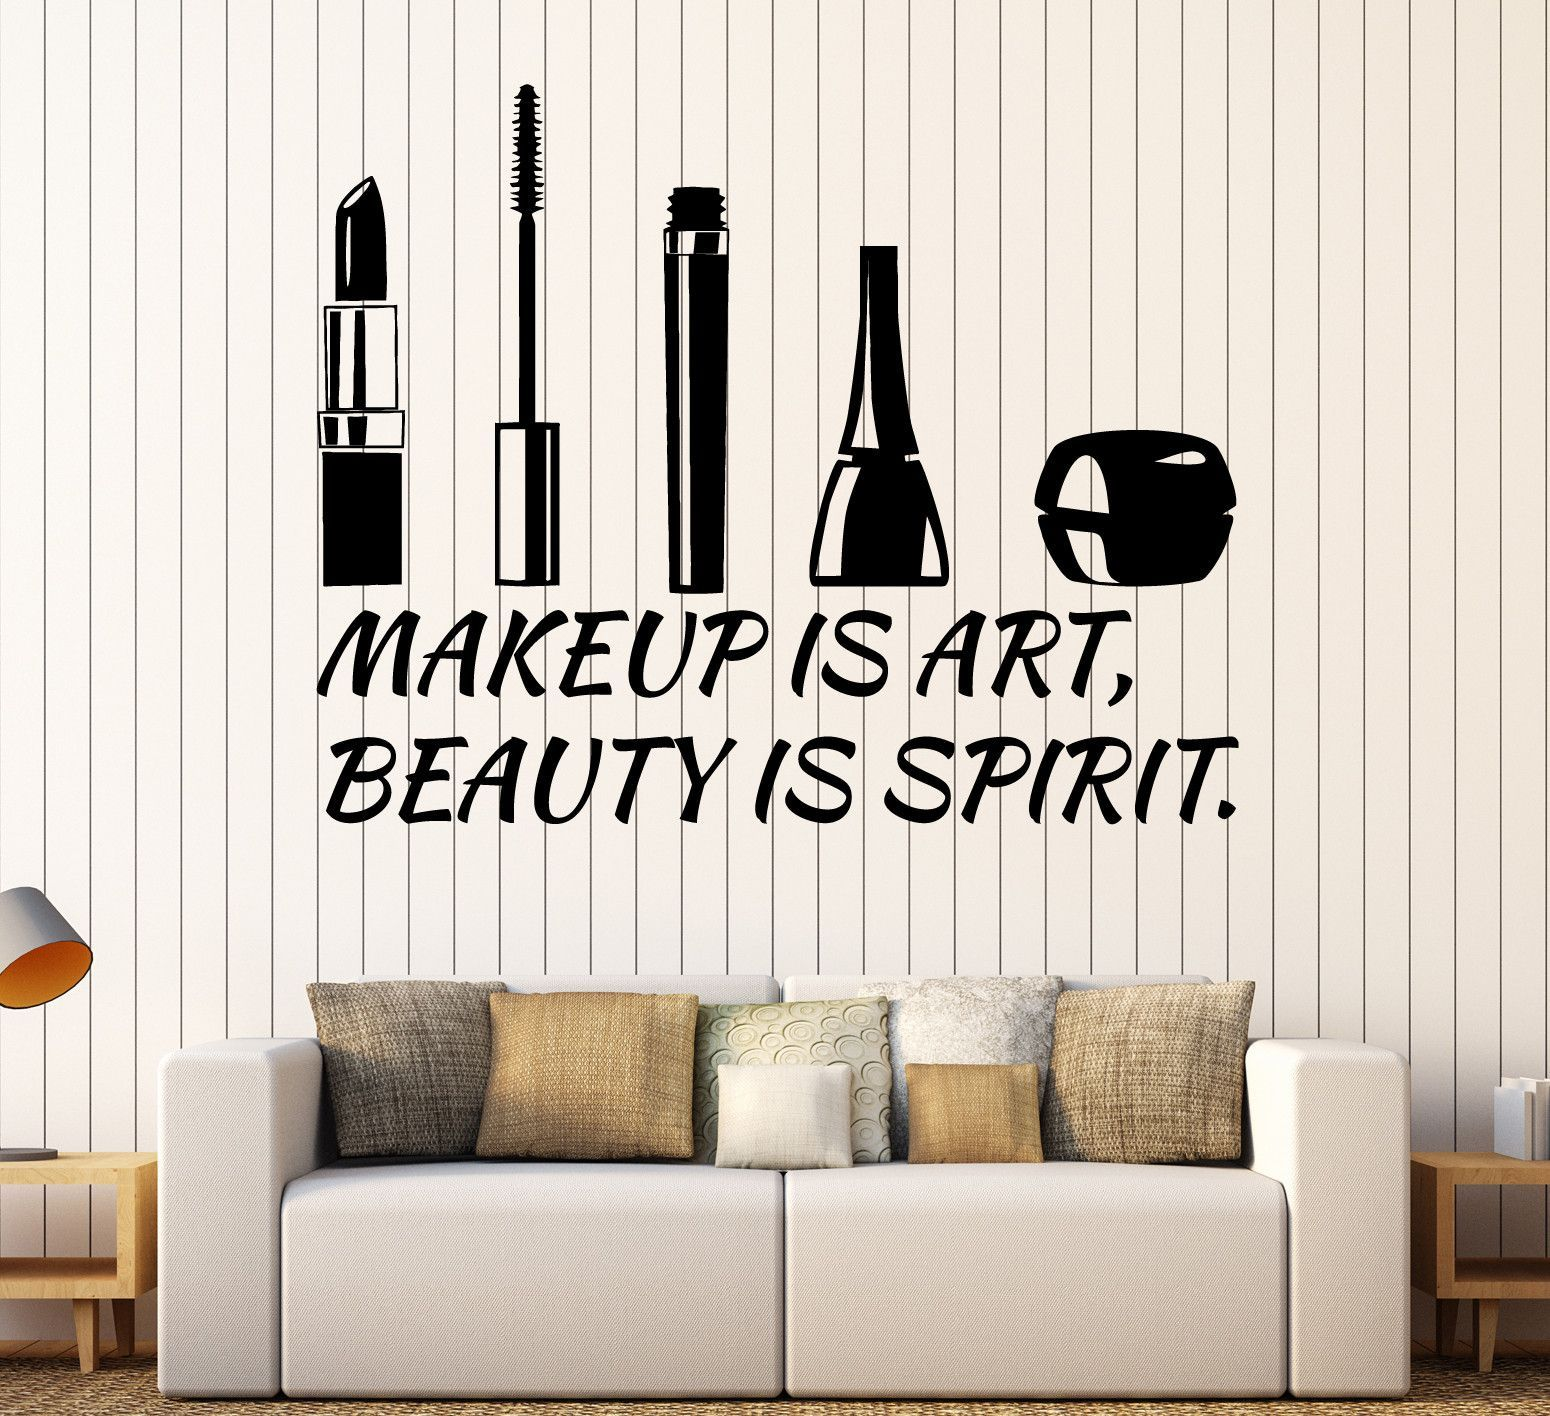 vinyl wall decal beauty salon quote cosmetics makeup on wall stickers id=13022